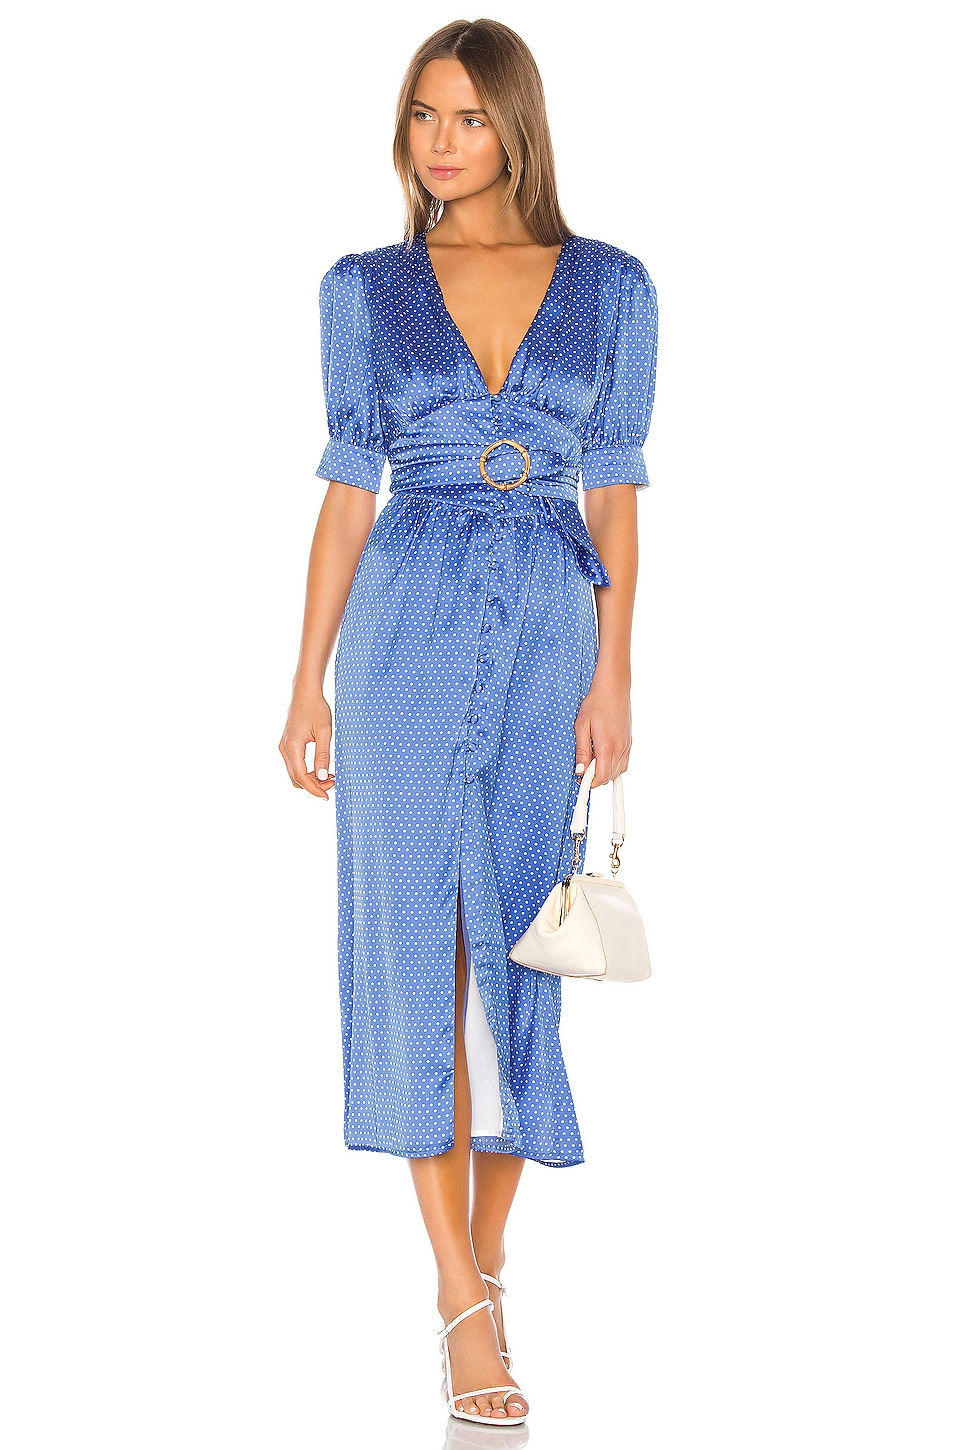 Song of Style Dimitri Midi Dress in Blue Dot